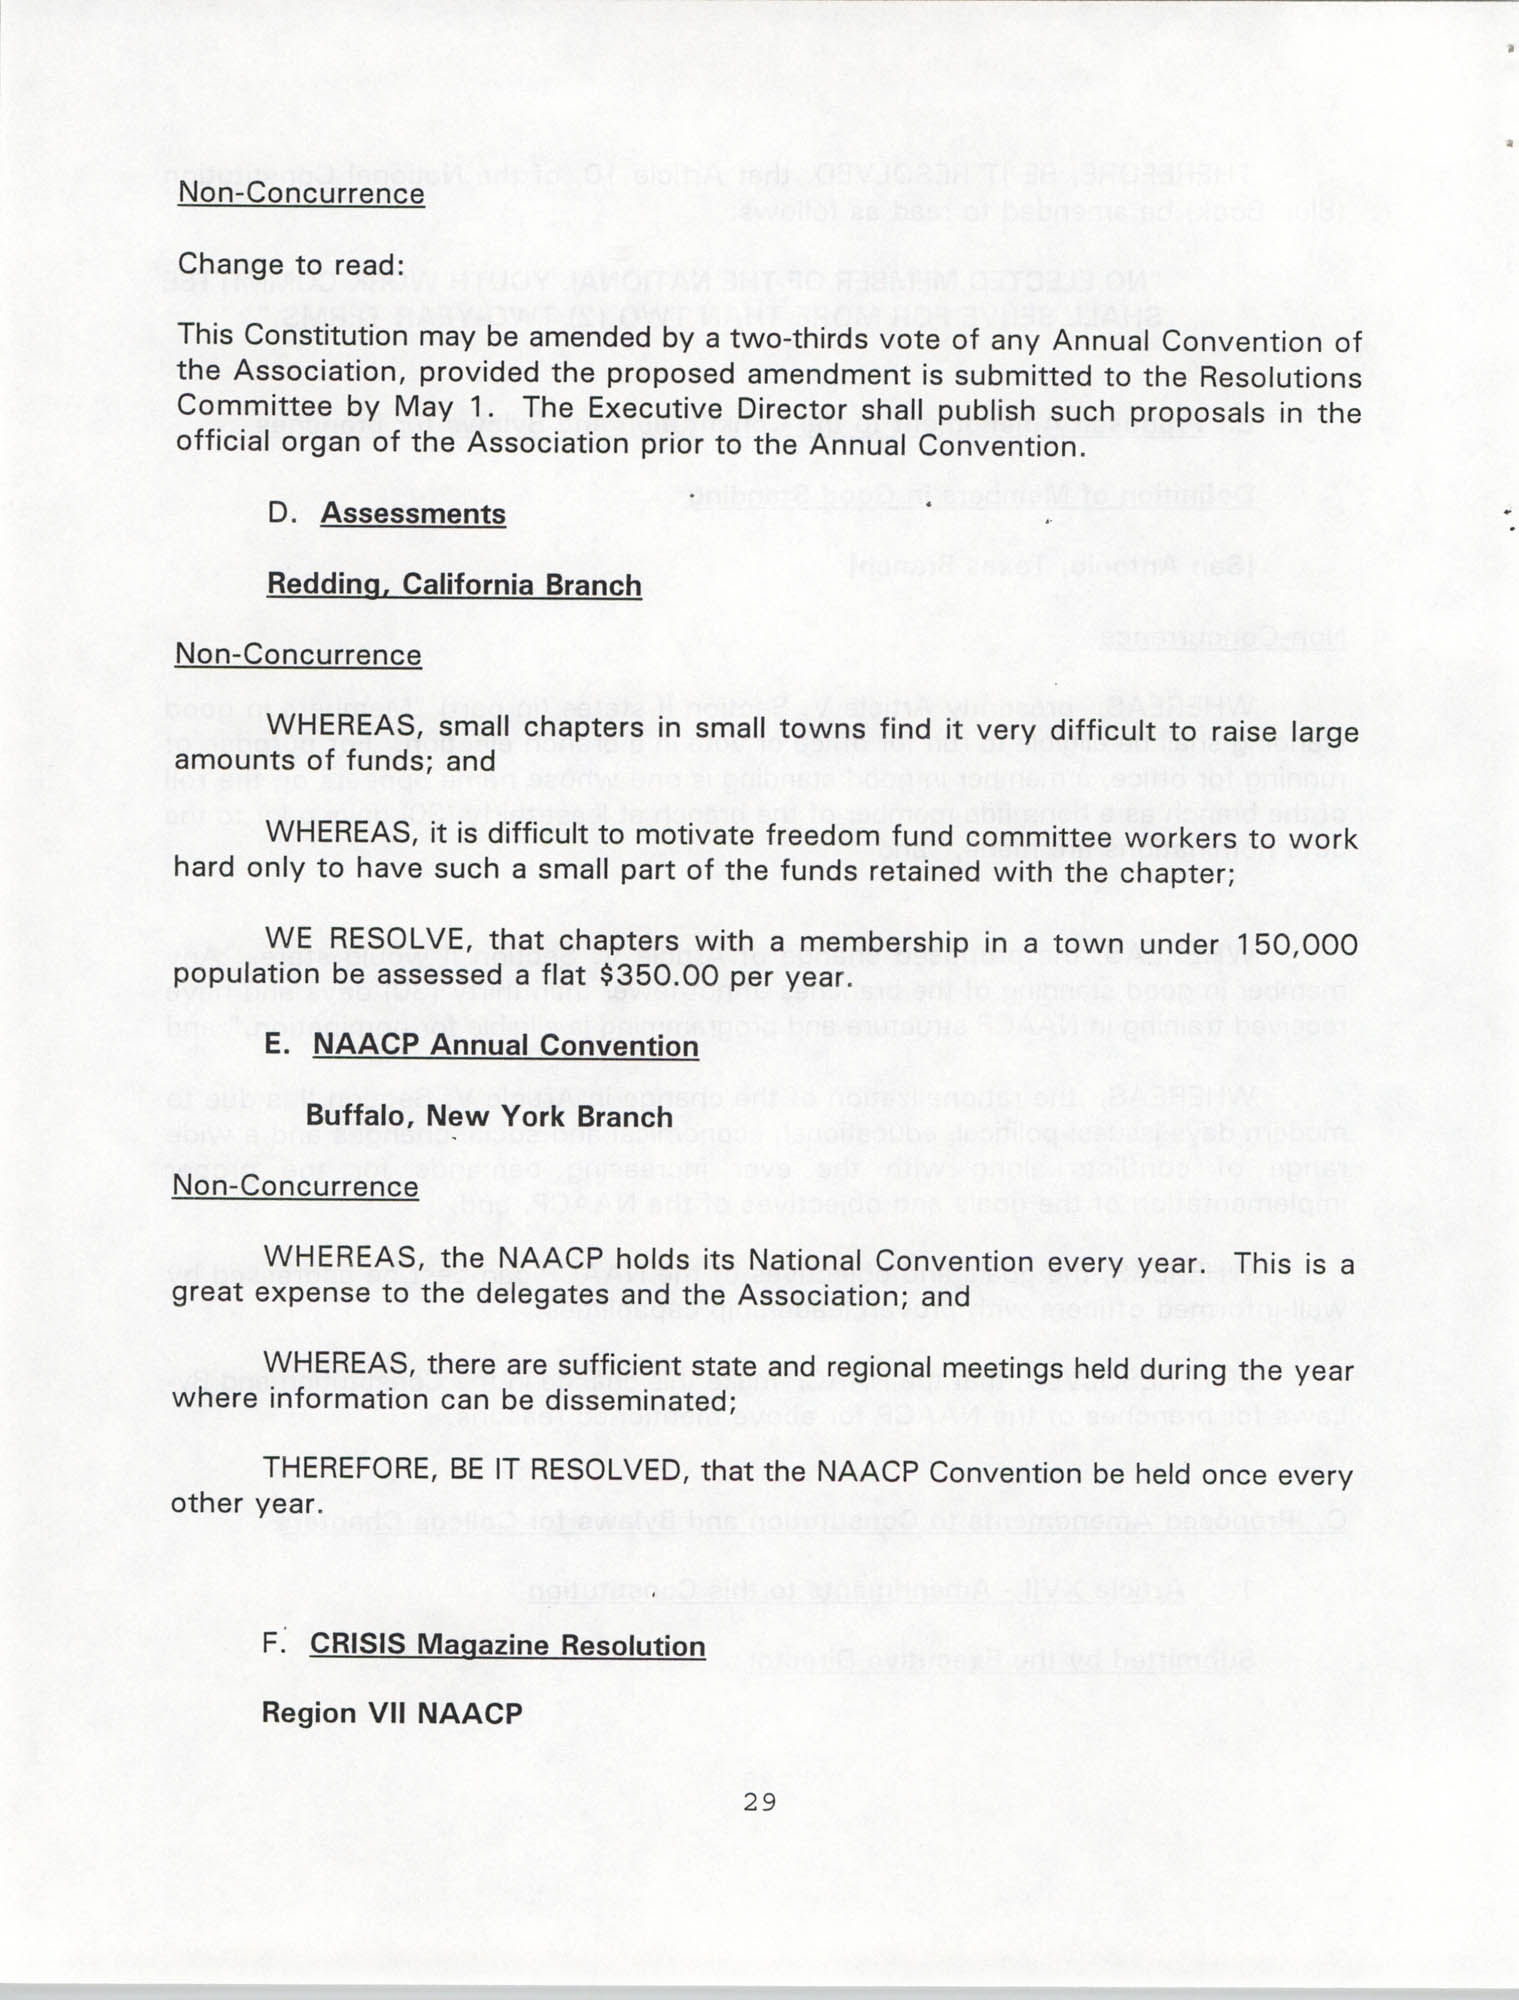 Resolutions Submitted Under Article X, Section 2 of the Constitution of the NAACP, 1994, Page 29